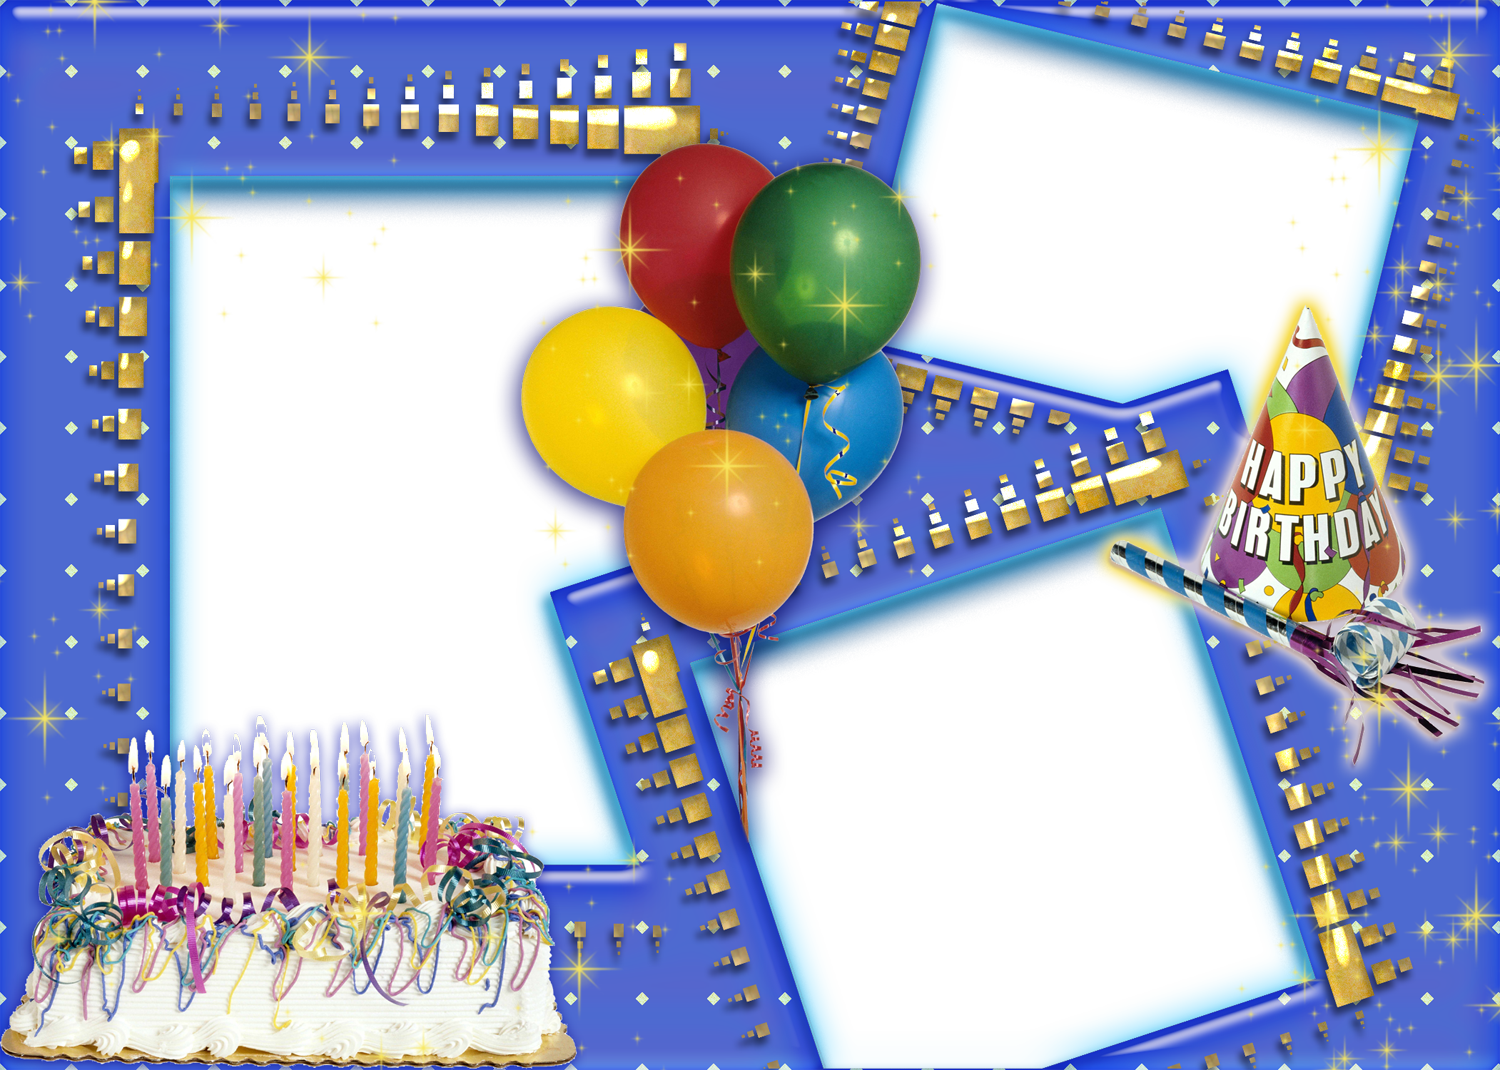 Birthday Collage Frame PNG Transparent Images.